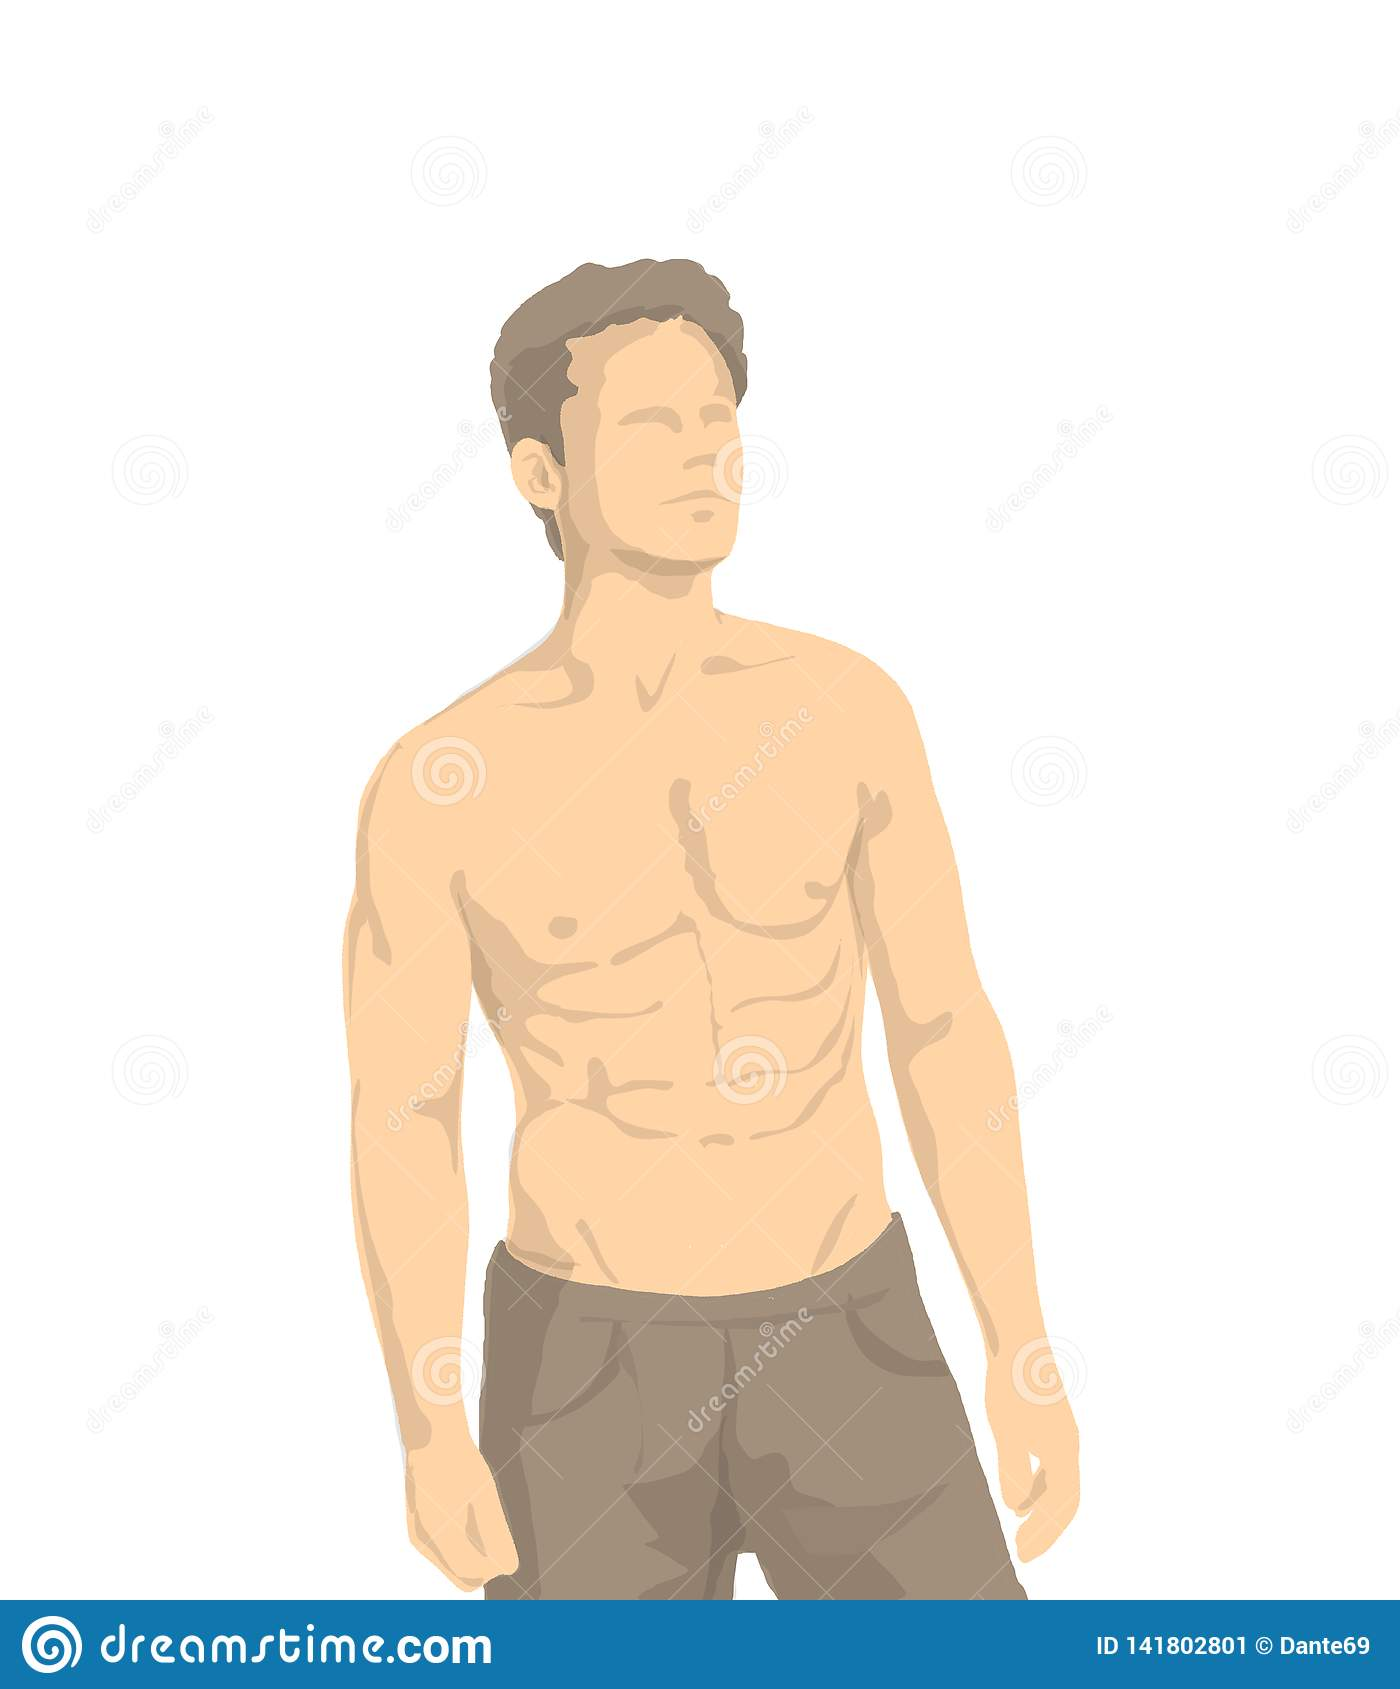 Illustration Of Shirtless Athletic Man With Muscles And